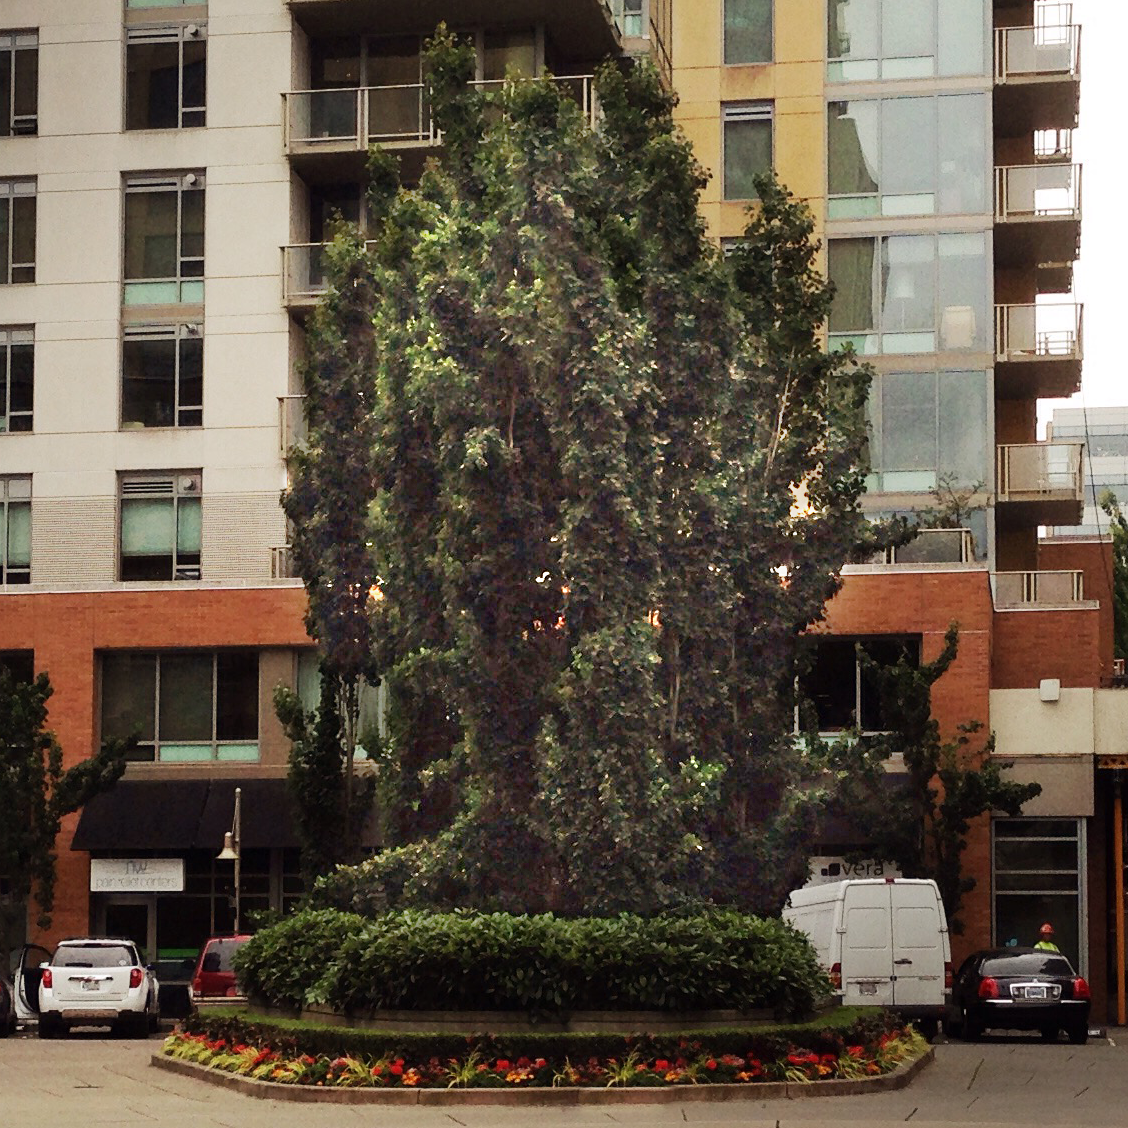 Tree planter at the center of the drive features a circular grove of tall, narrow habit trees. These trees are about 60 feet tall and 10 feet wide or less.